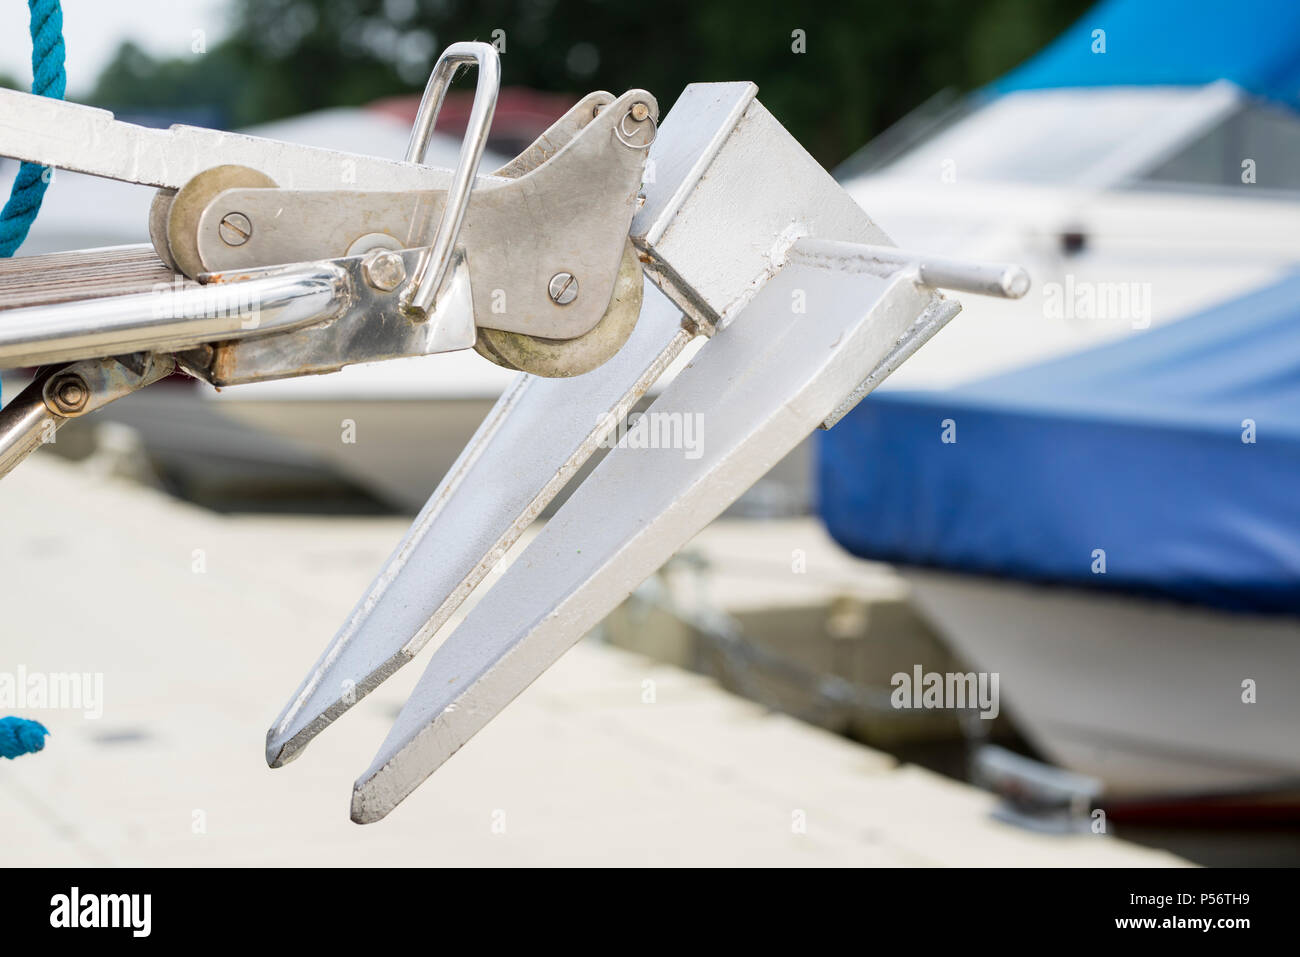 A anchor on a boat which lie on the pier in sun shine - Stock Image